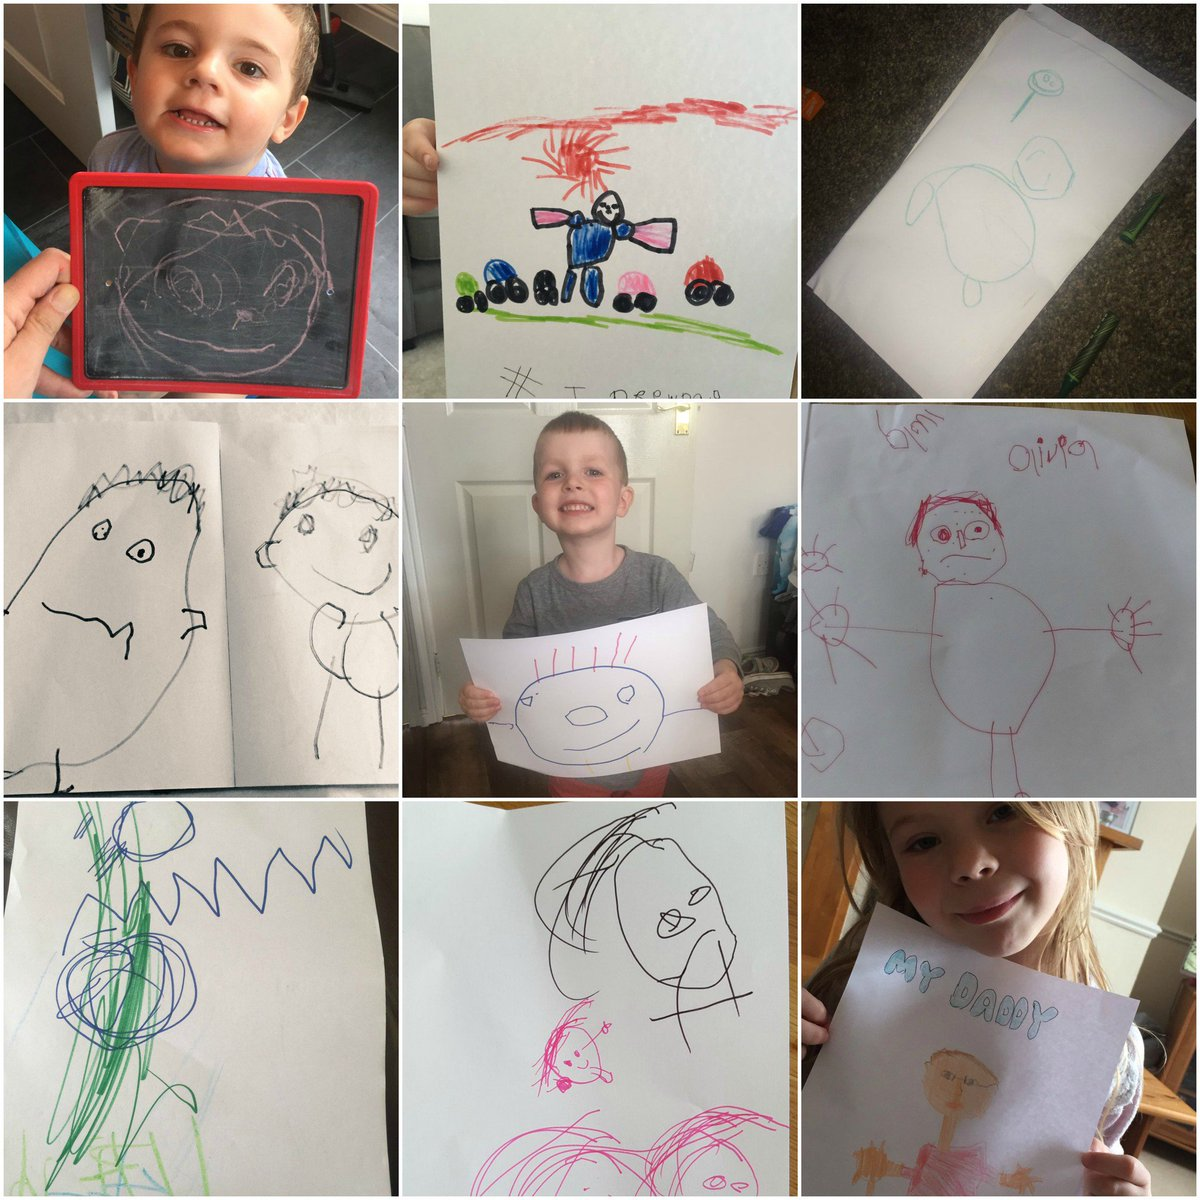 Tweet us a picture of your little one's daddy drawings using #IDrewDad for the chance to win a bundle of paints! https://t.co/wWMfXftKZI